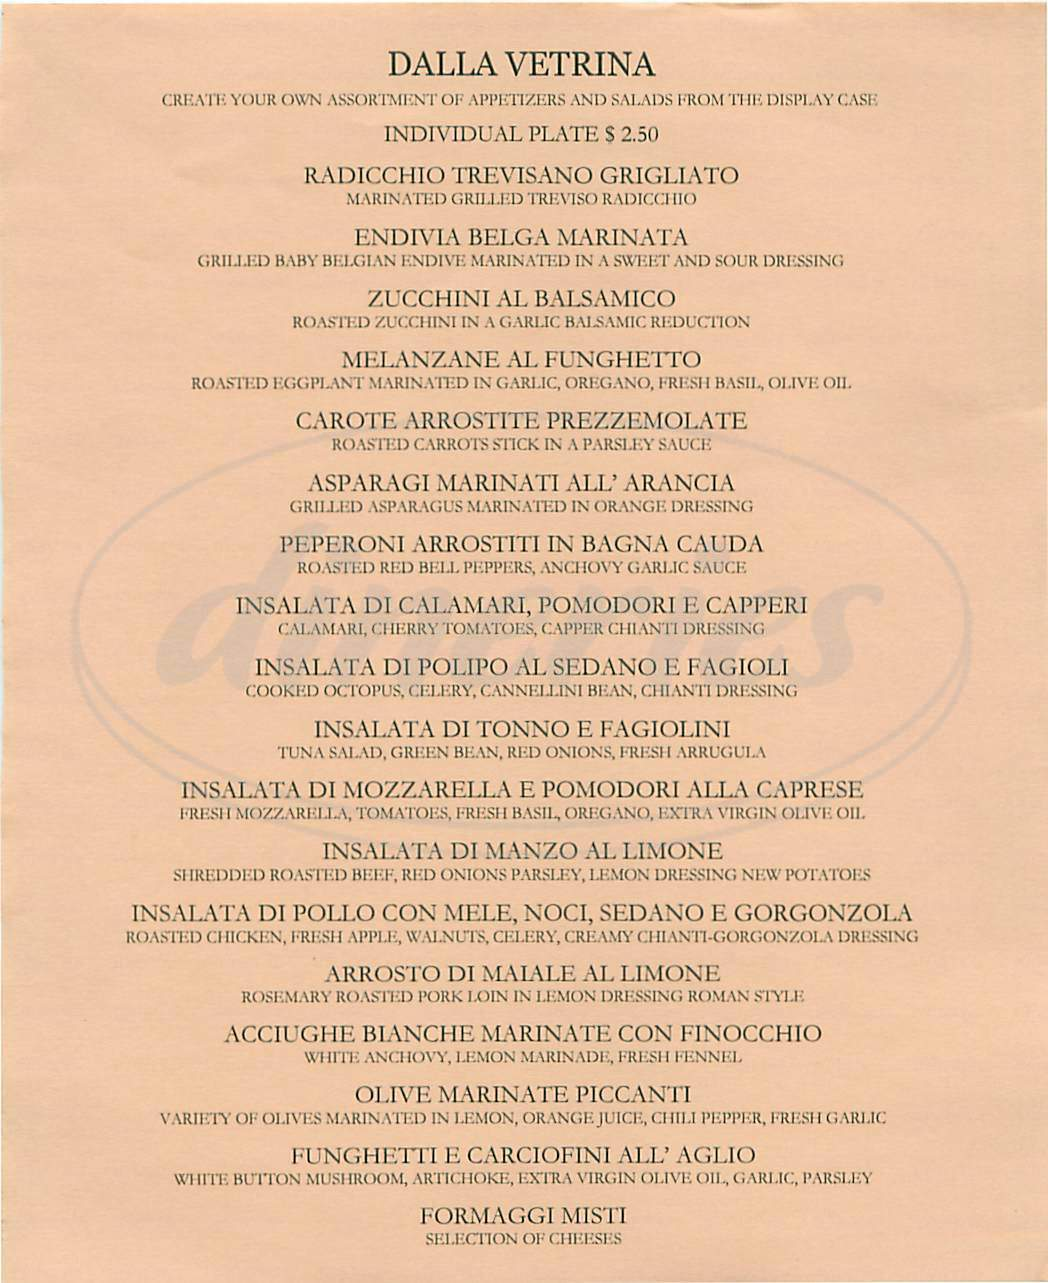 menu for Frascati Ristorante